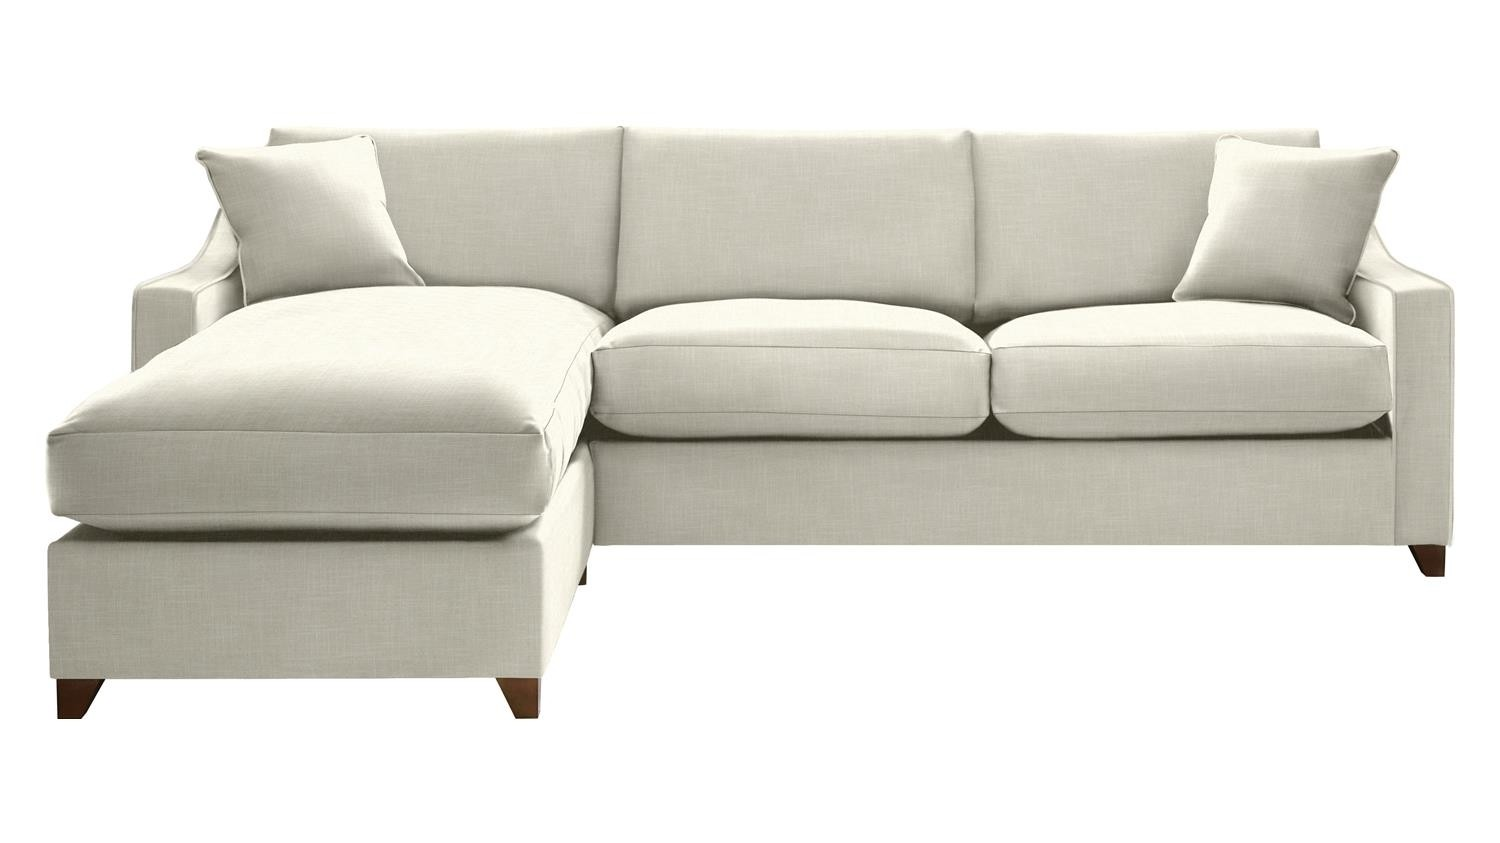 The Bermerton 4 Seater Chaise Storage Sofa Bed